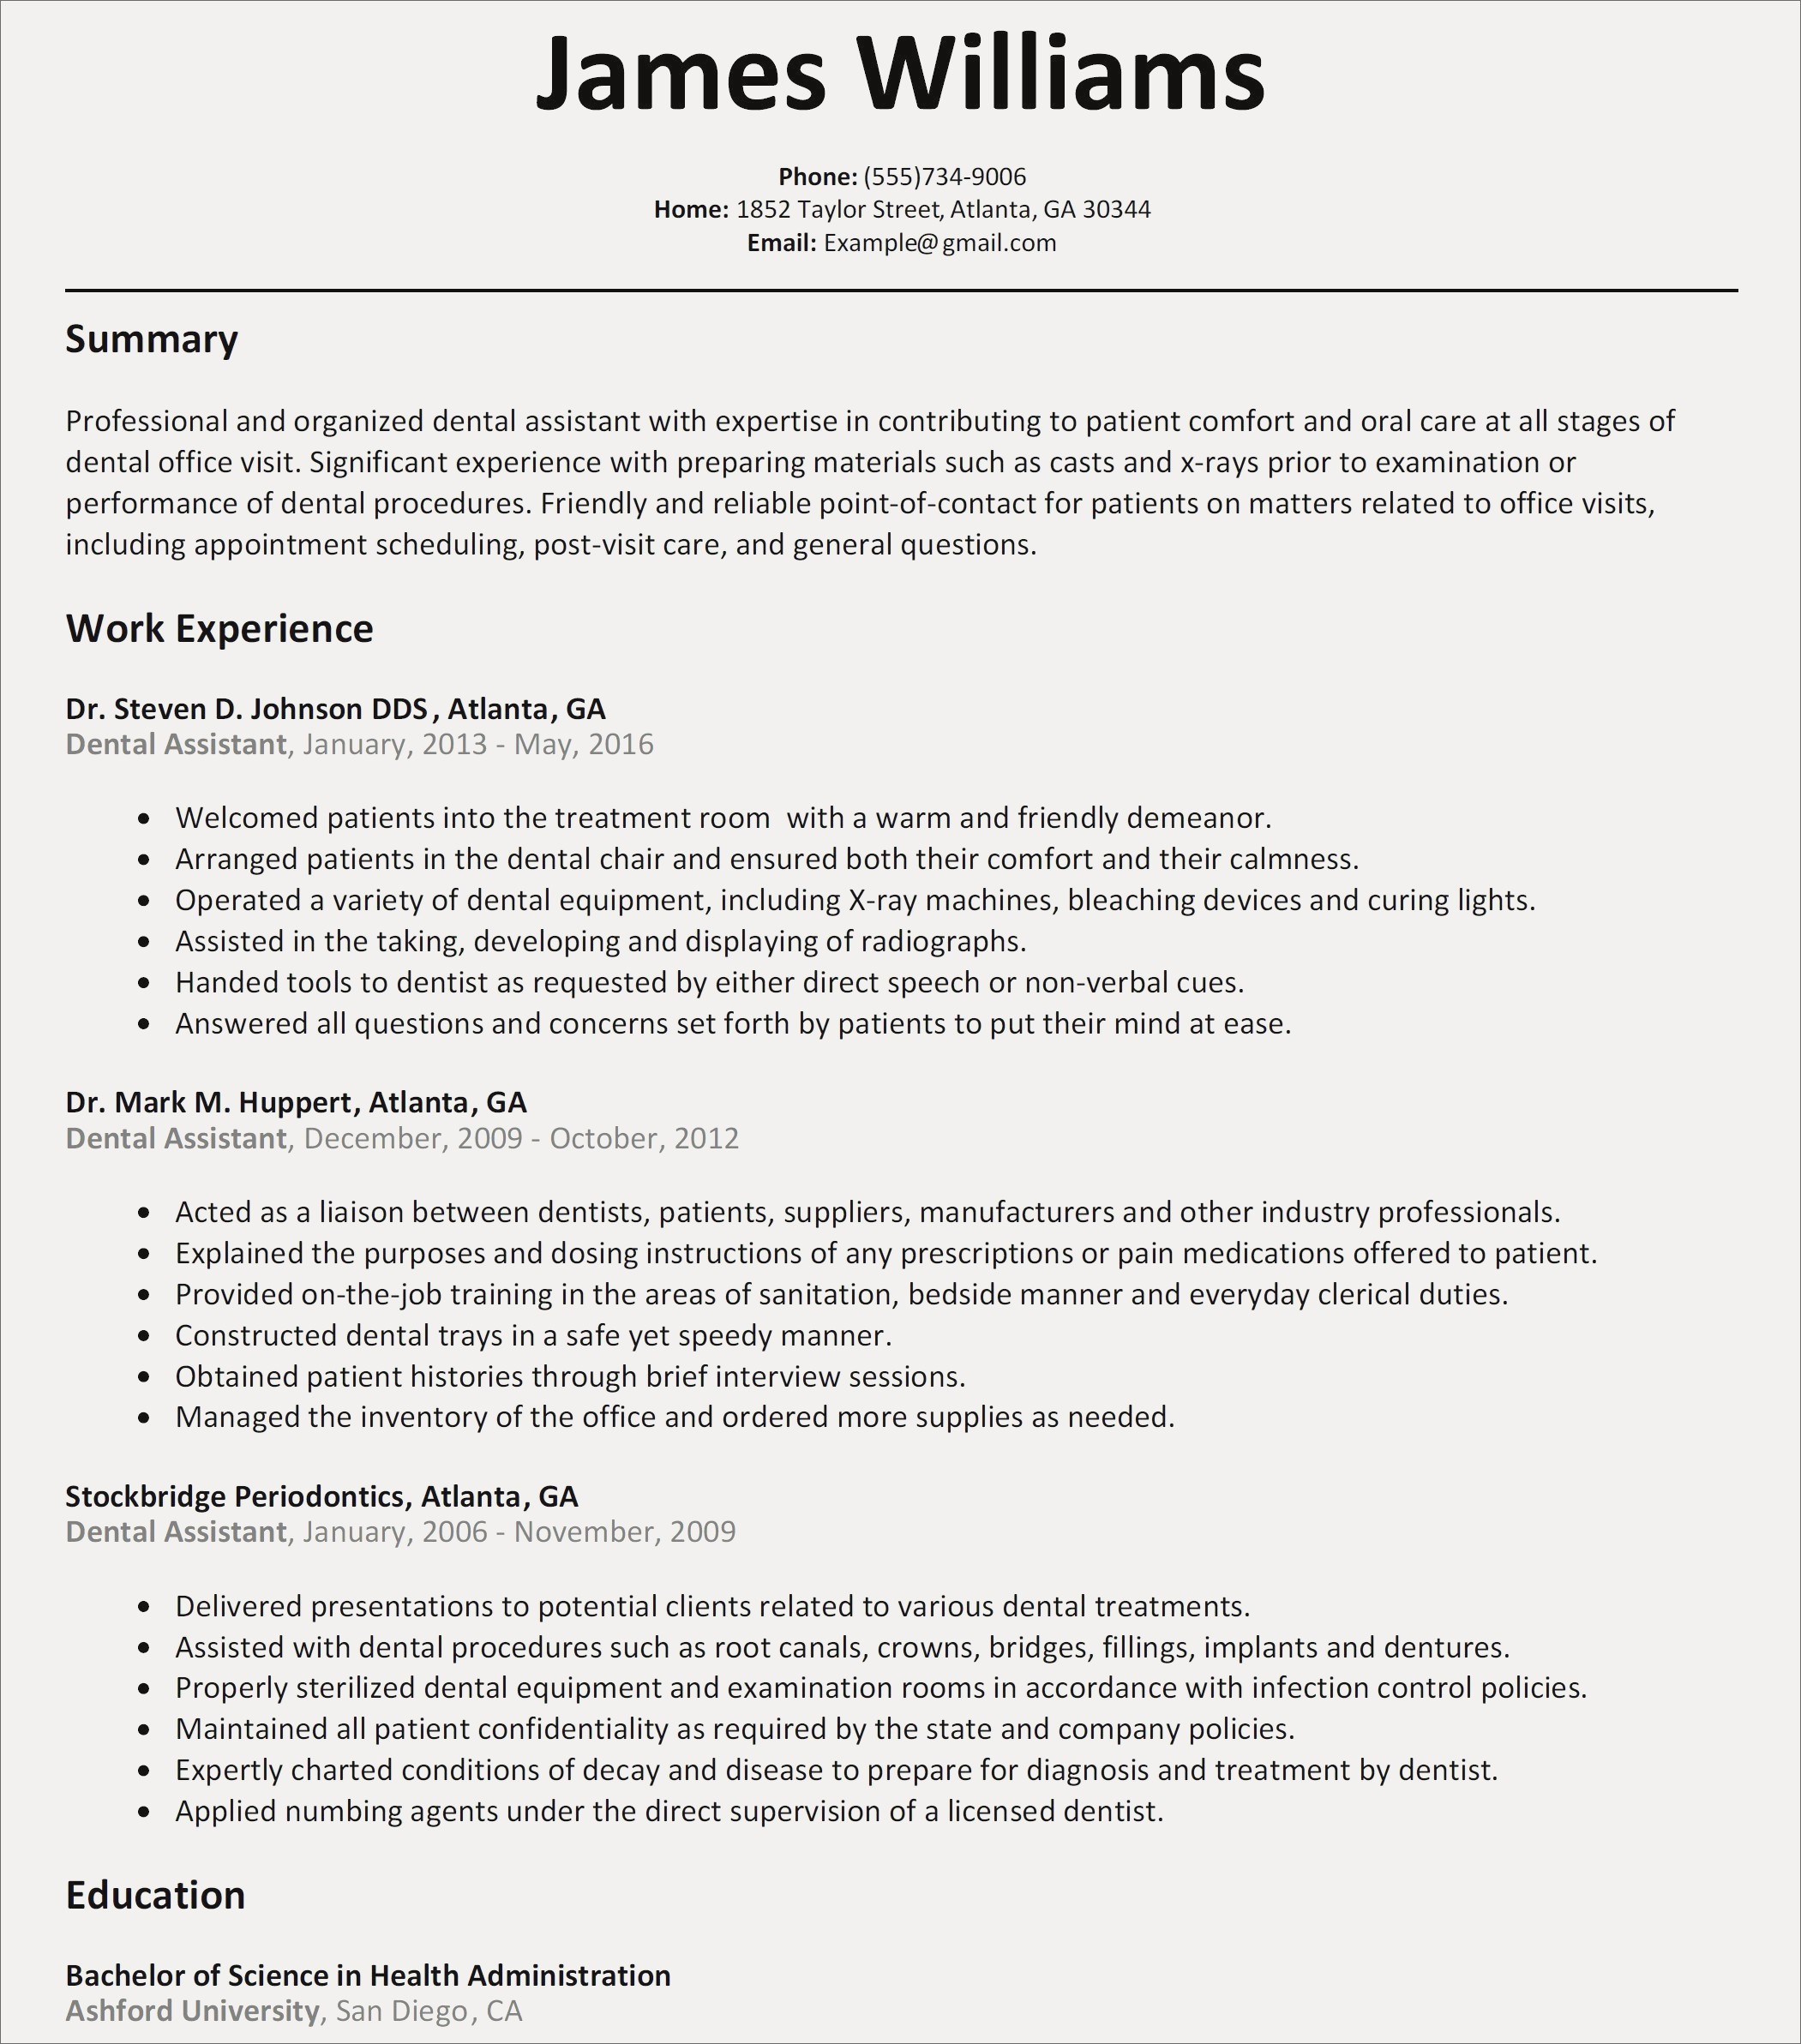 Summary Of A Resume - Resume Professional Summary Examples New Sample Resumes